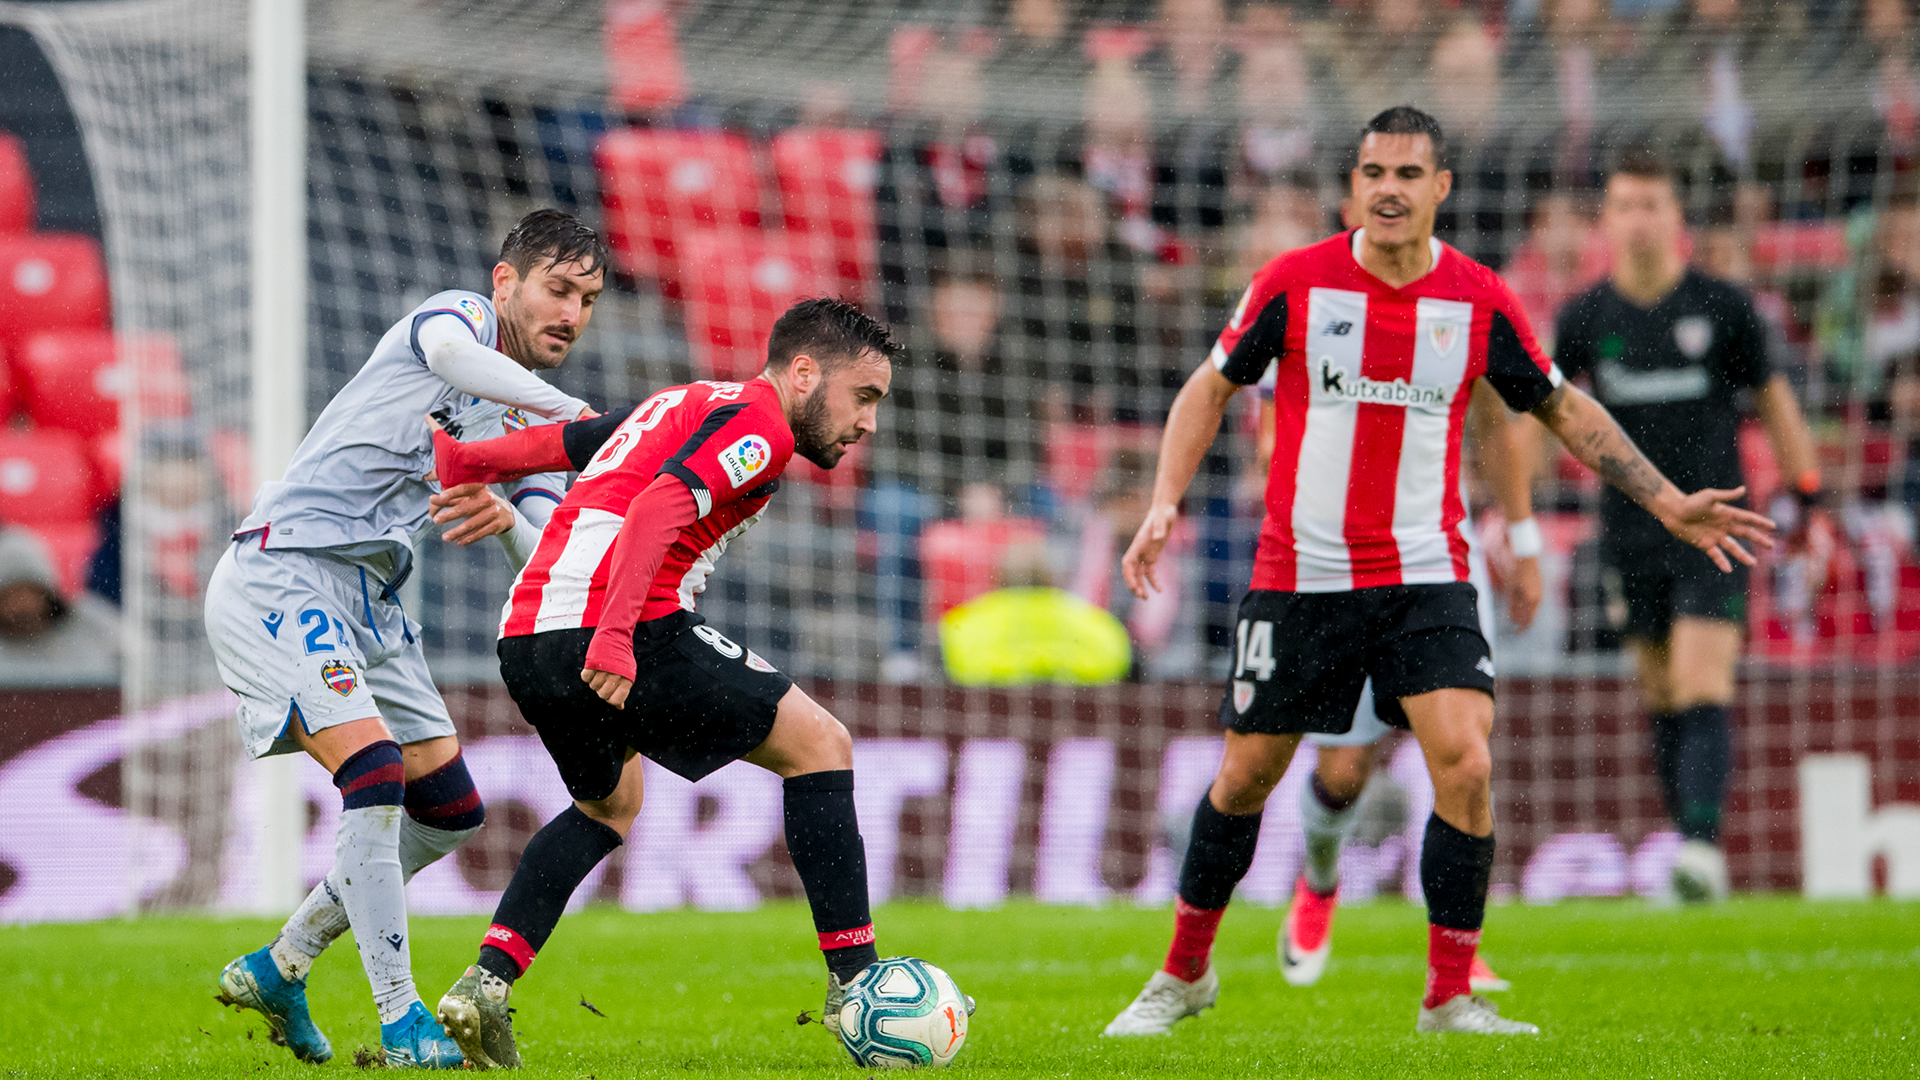 Athletic Club vs Levante UD: an opportunity to turn things around